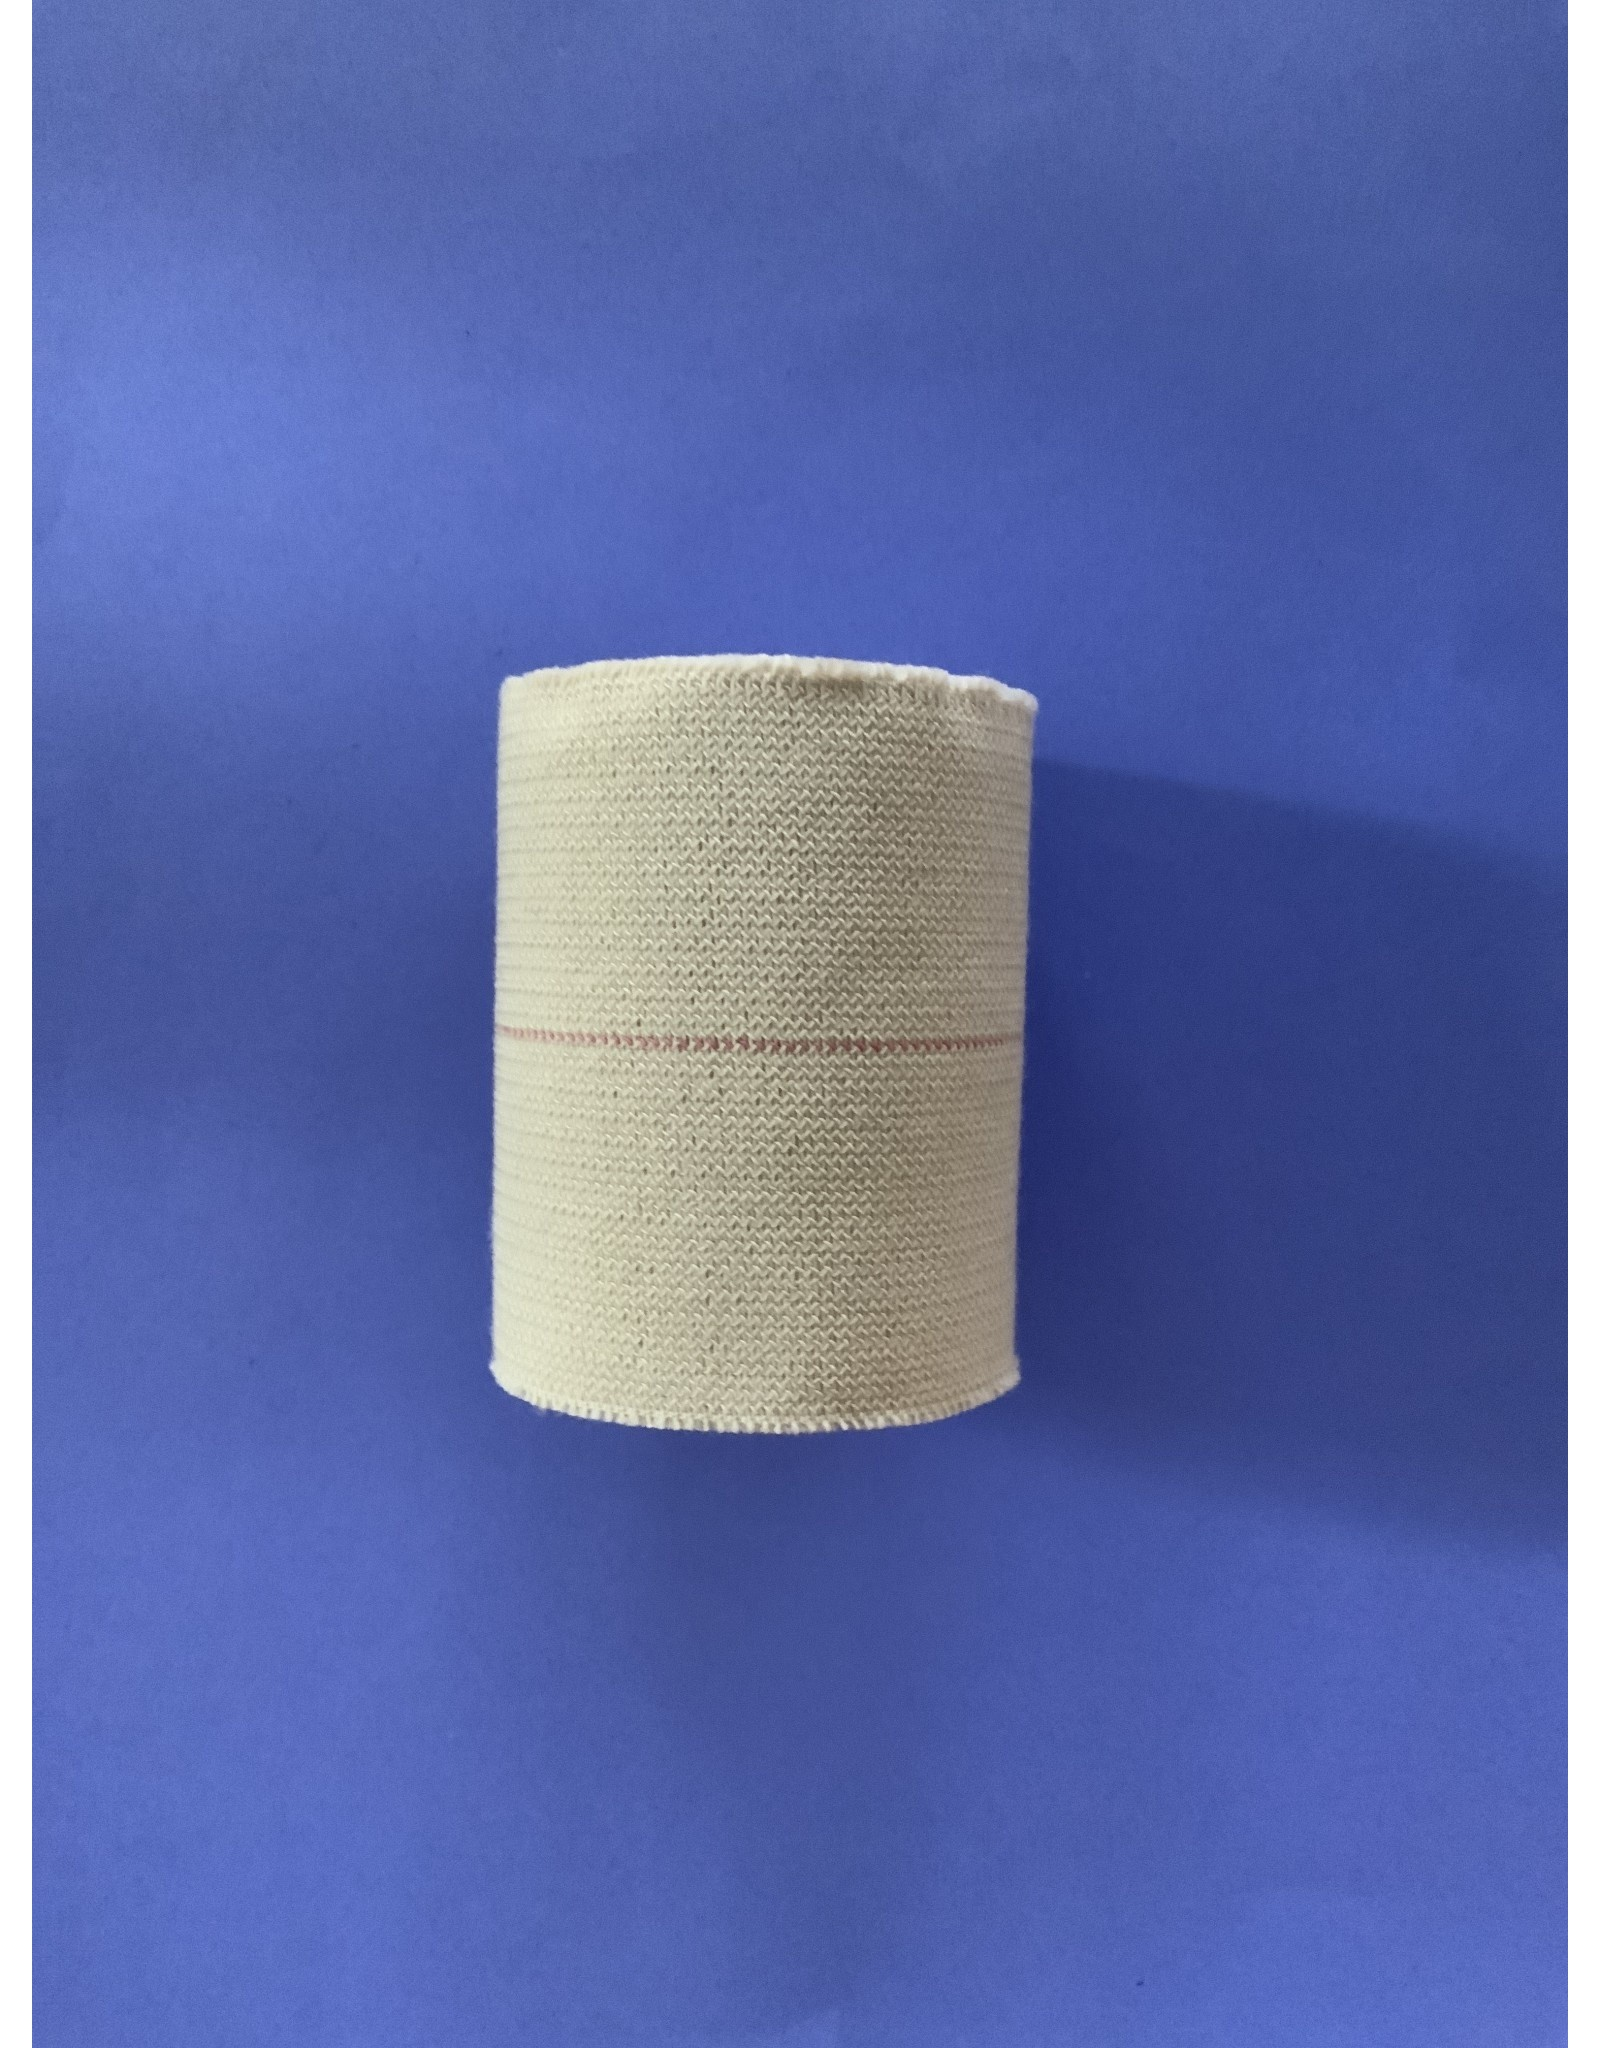 "3"" Vet Adhesive Bandage - Comes in a box of 6- #MF012-3"